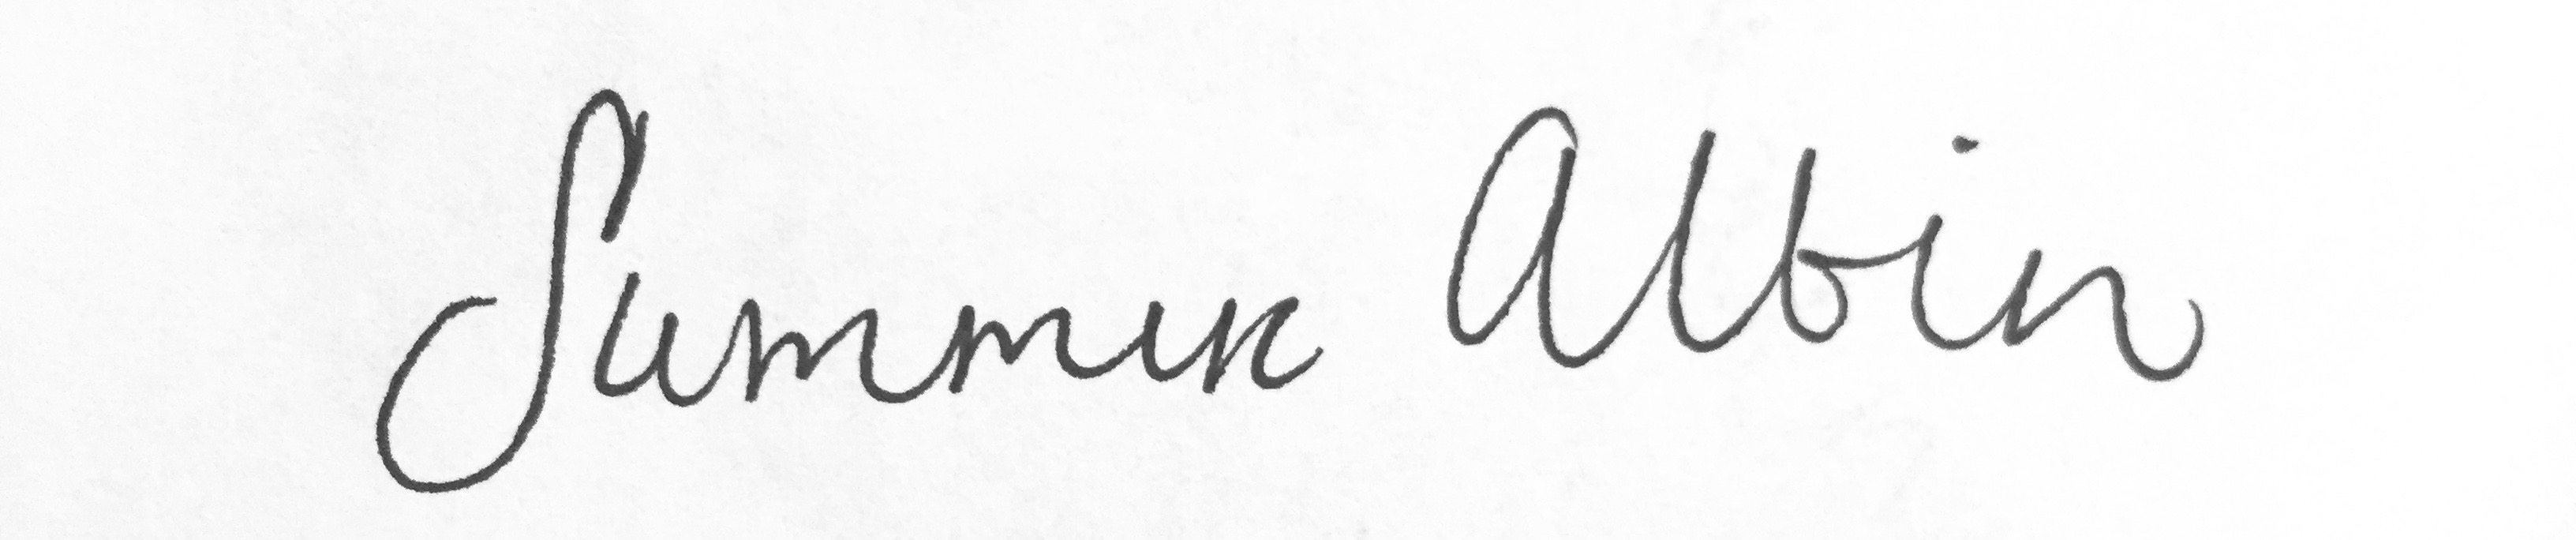 Summer Albin Signature